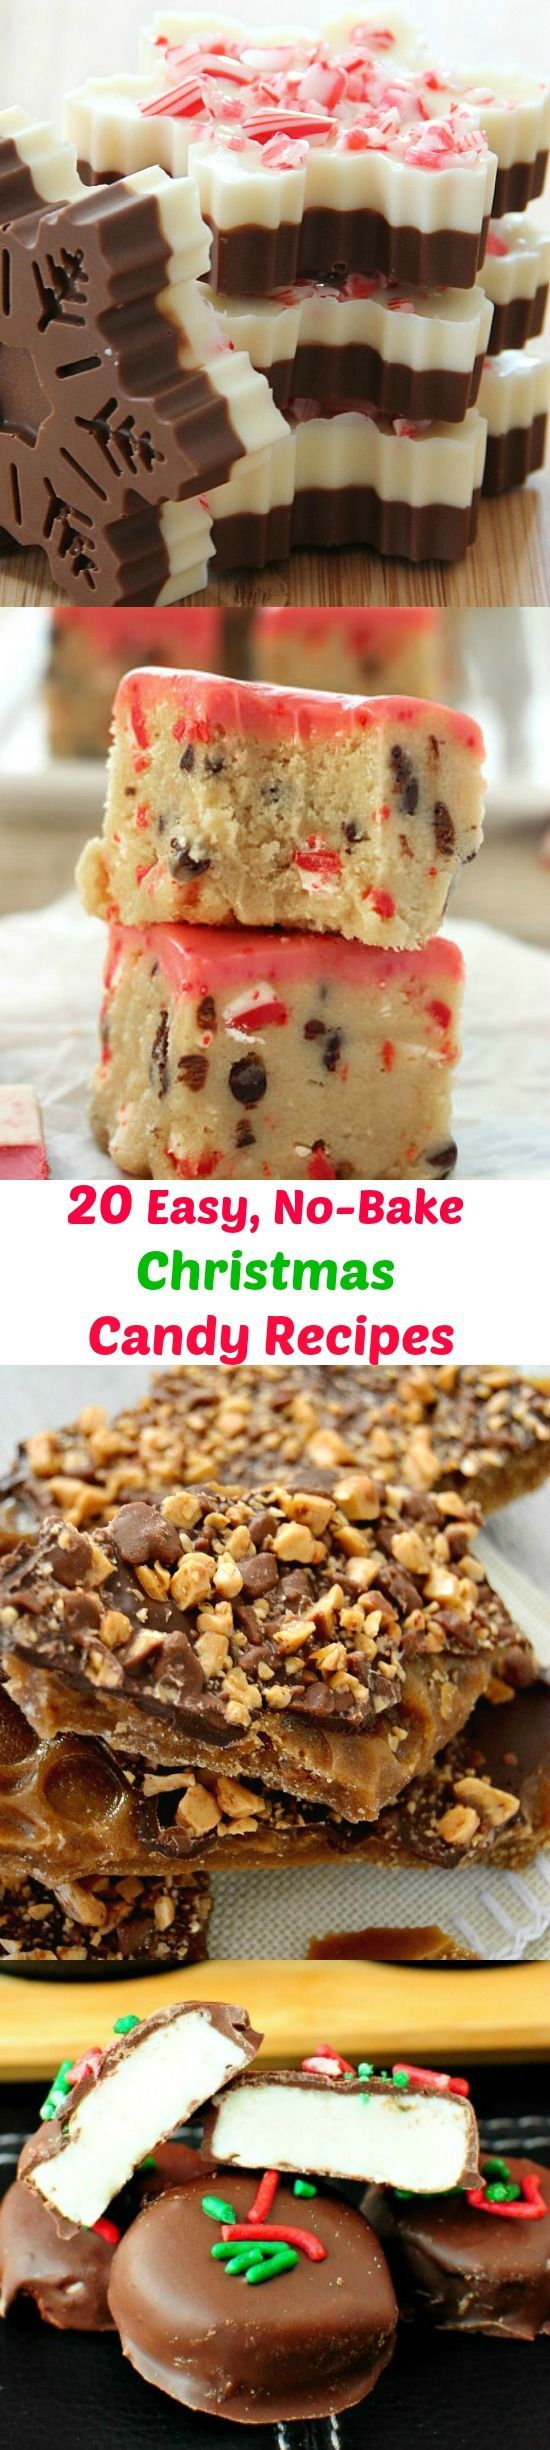 1235 best christmas images on pinterest christmas ideas for Traditional christmas candy recipes